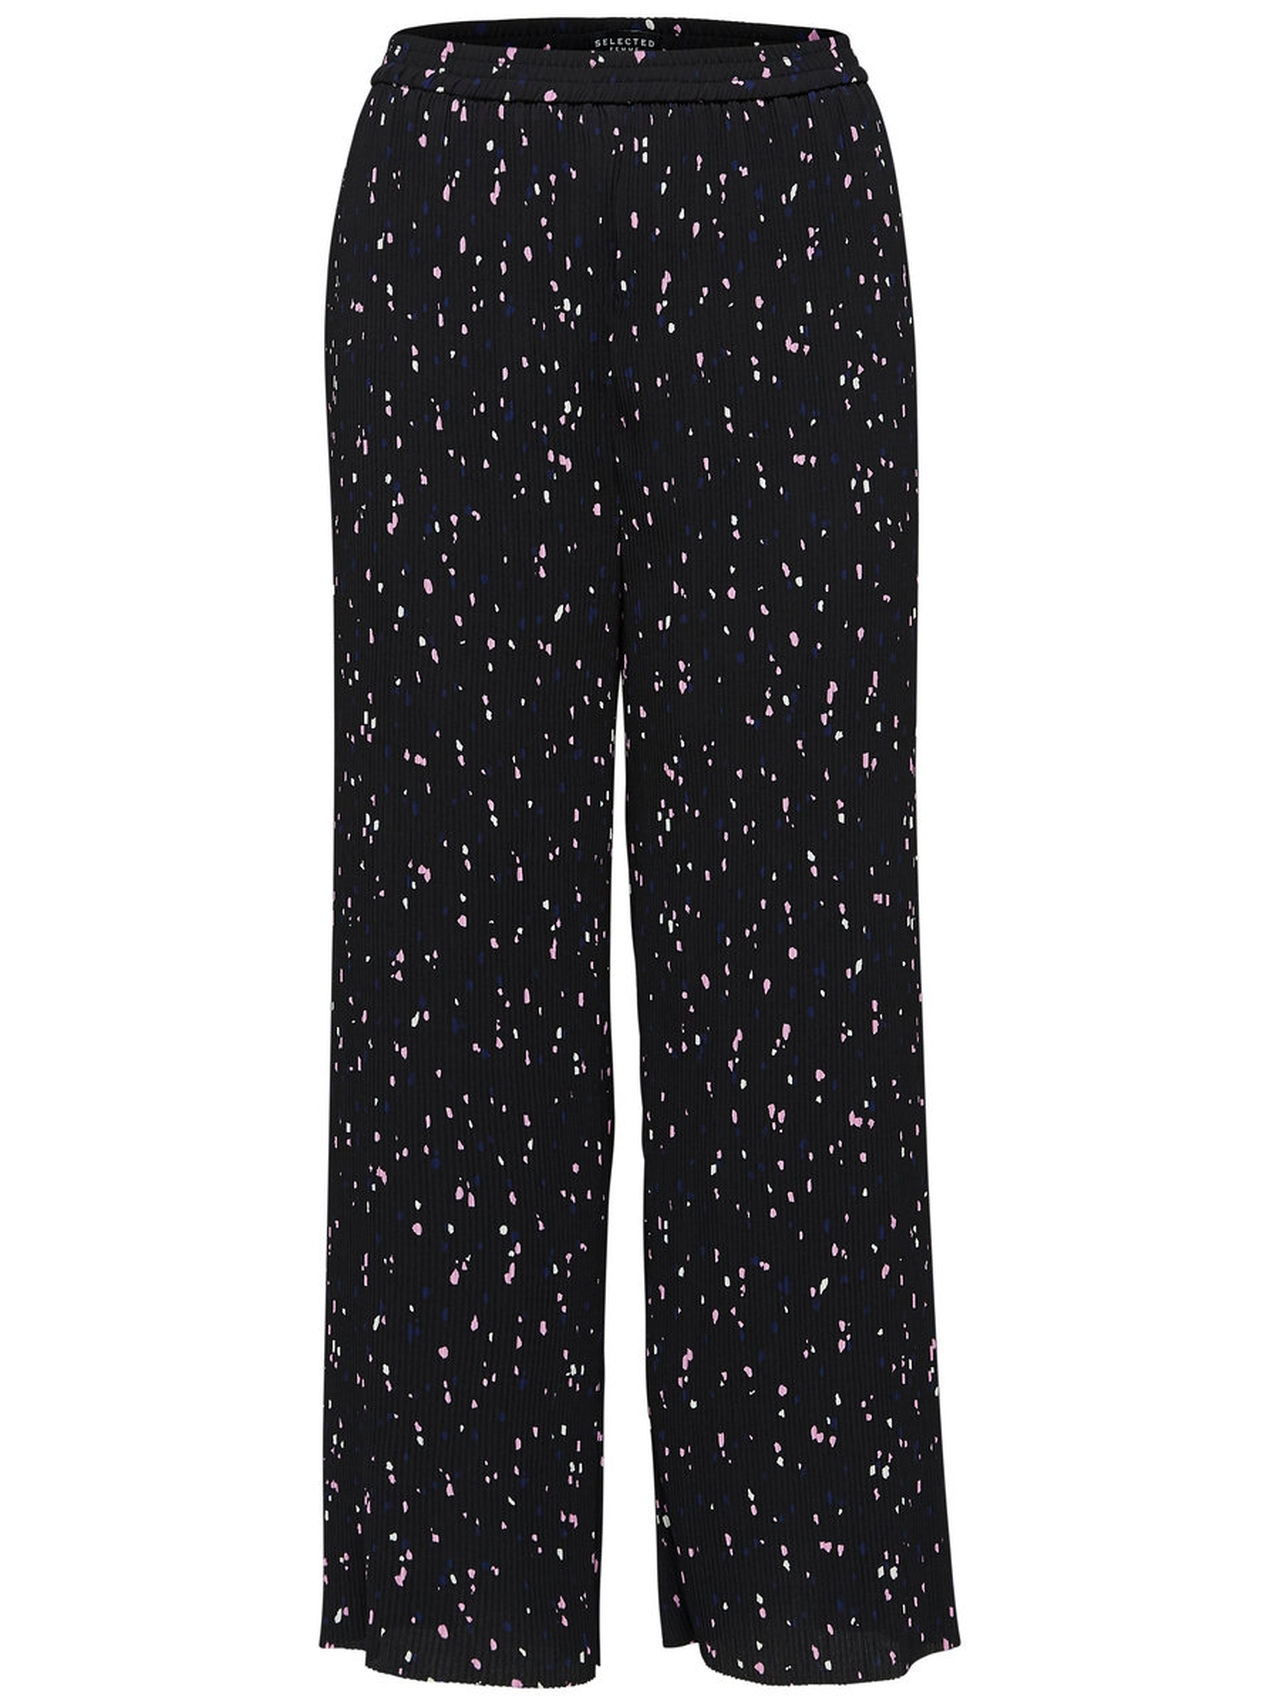 SELECTED Plisse – Trousers Kvinna Svart